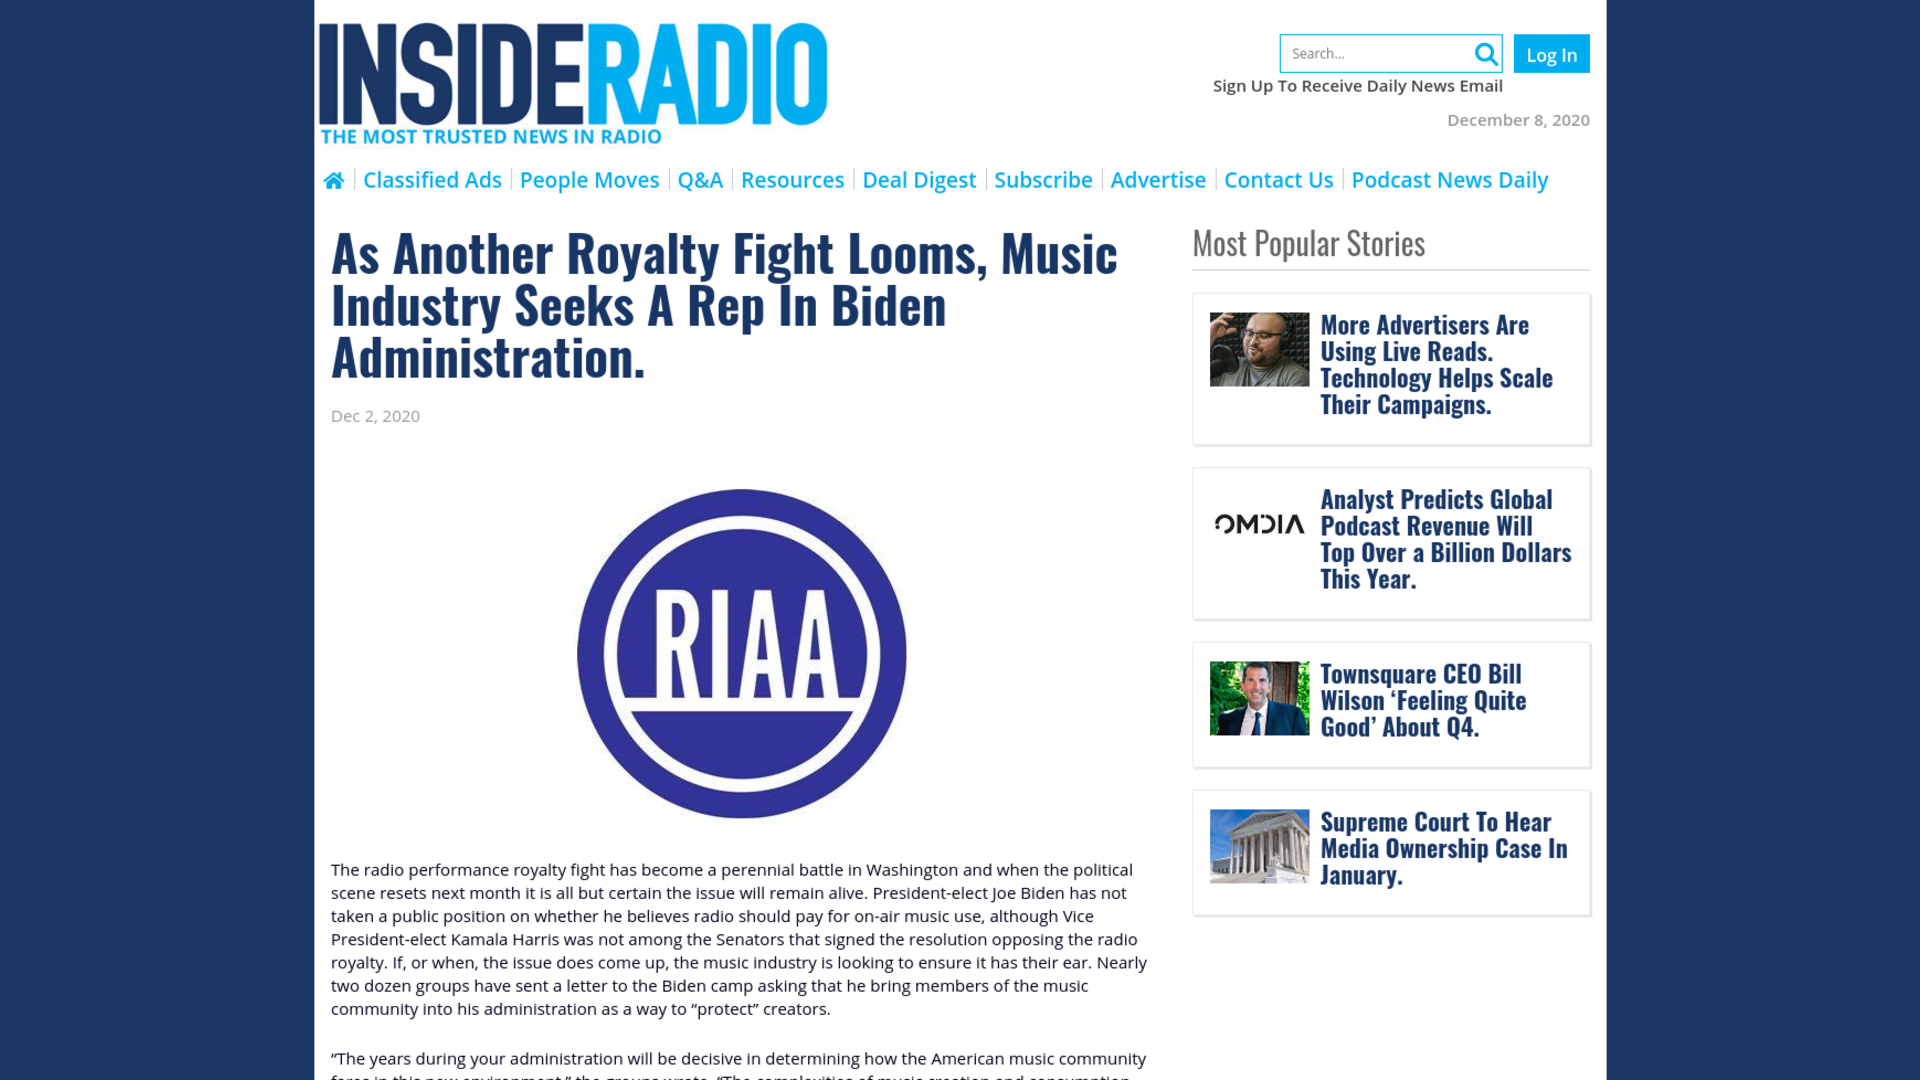 Fairness Rocks News As Another Royalty Fight Looms, Music Industry Seeks A Rep In Biden Administration.